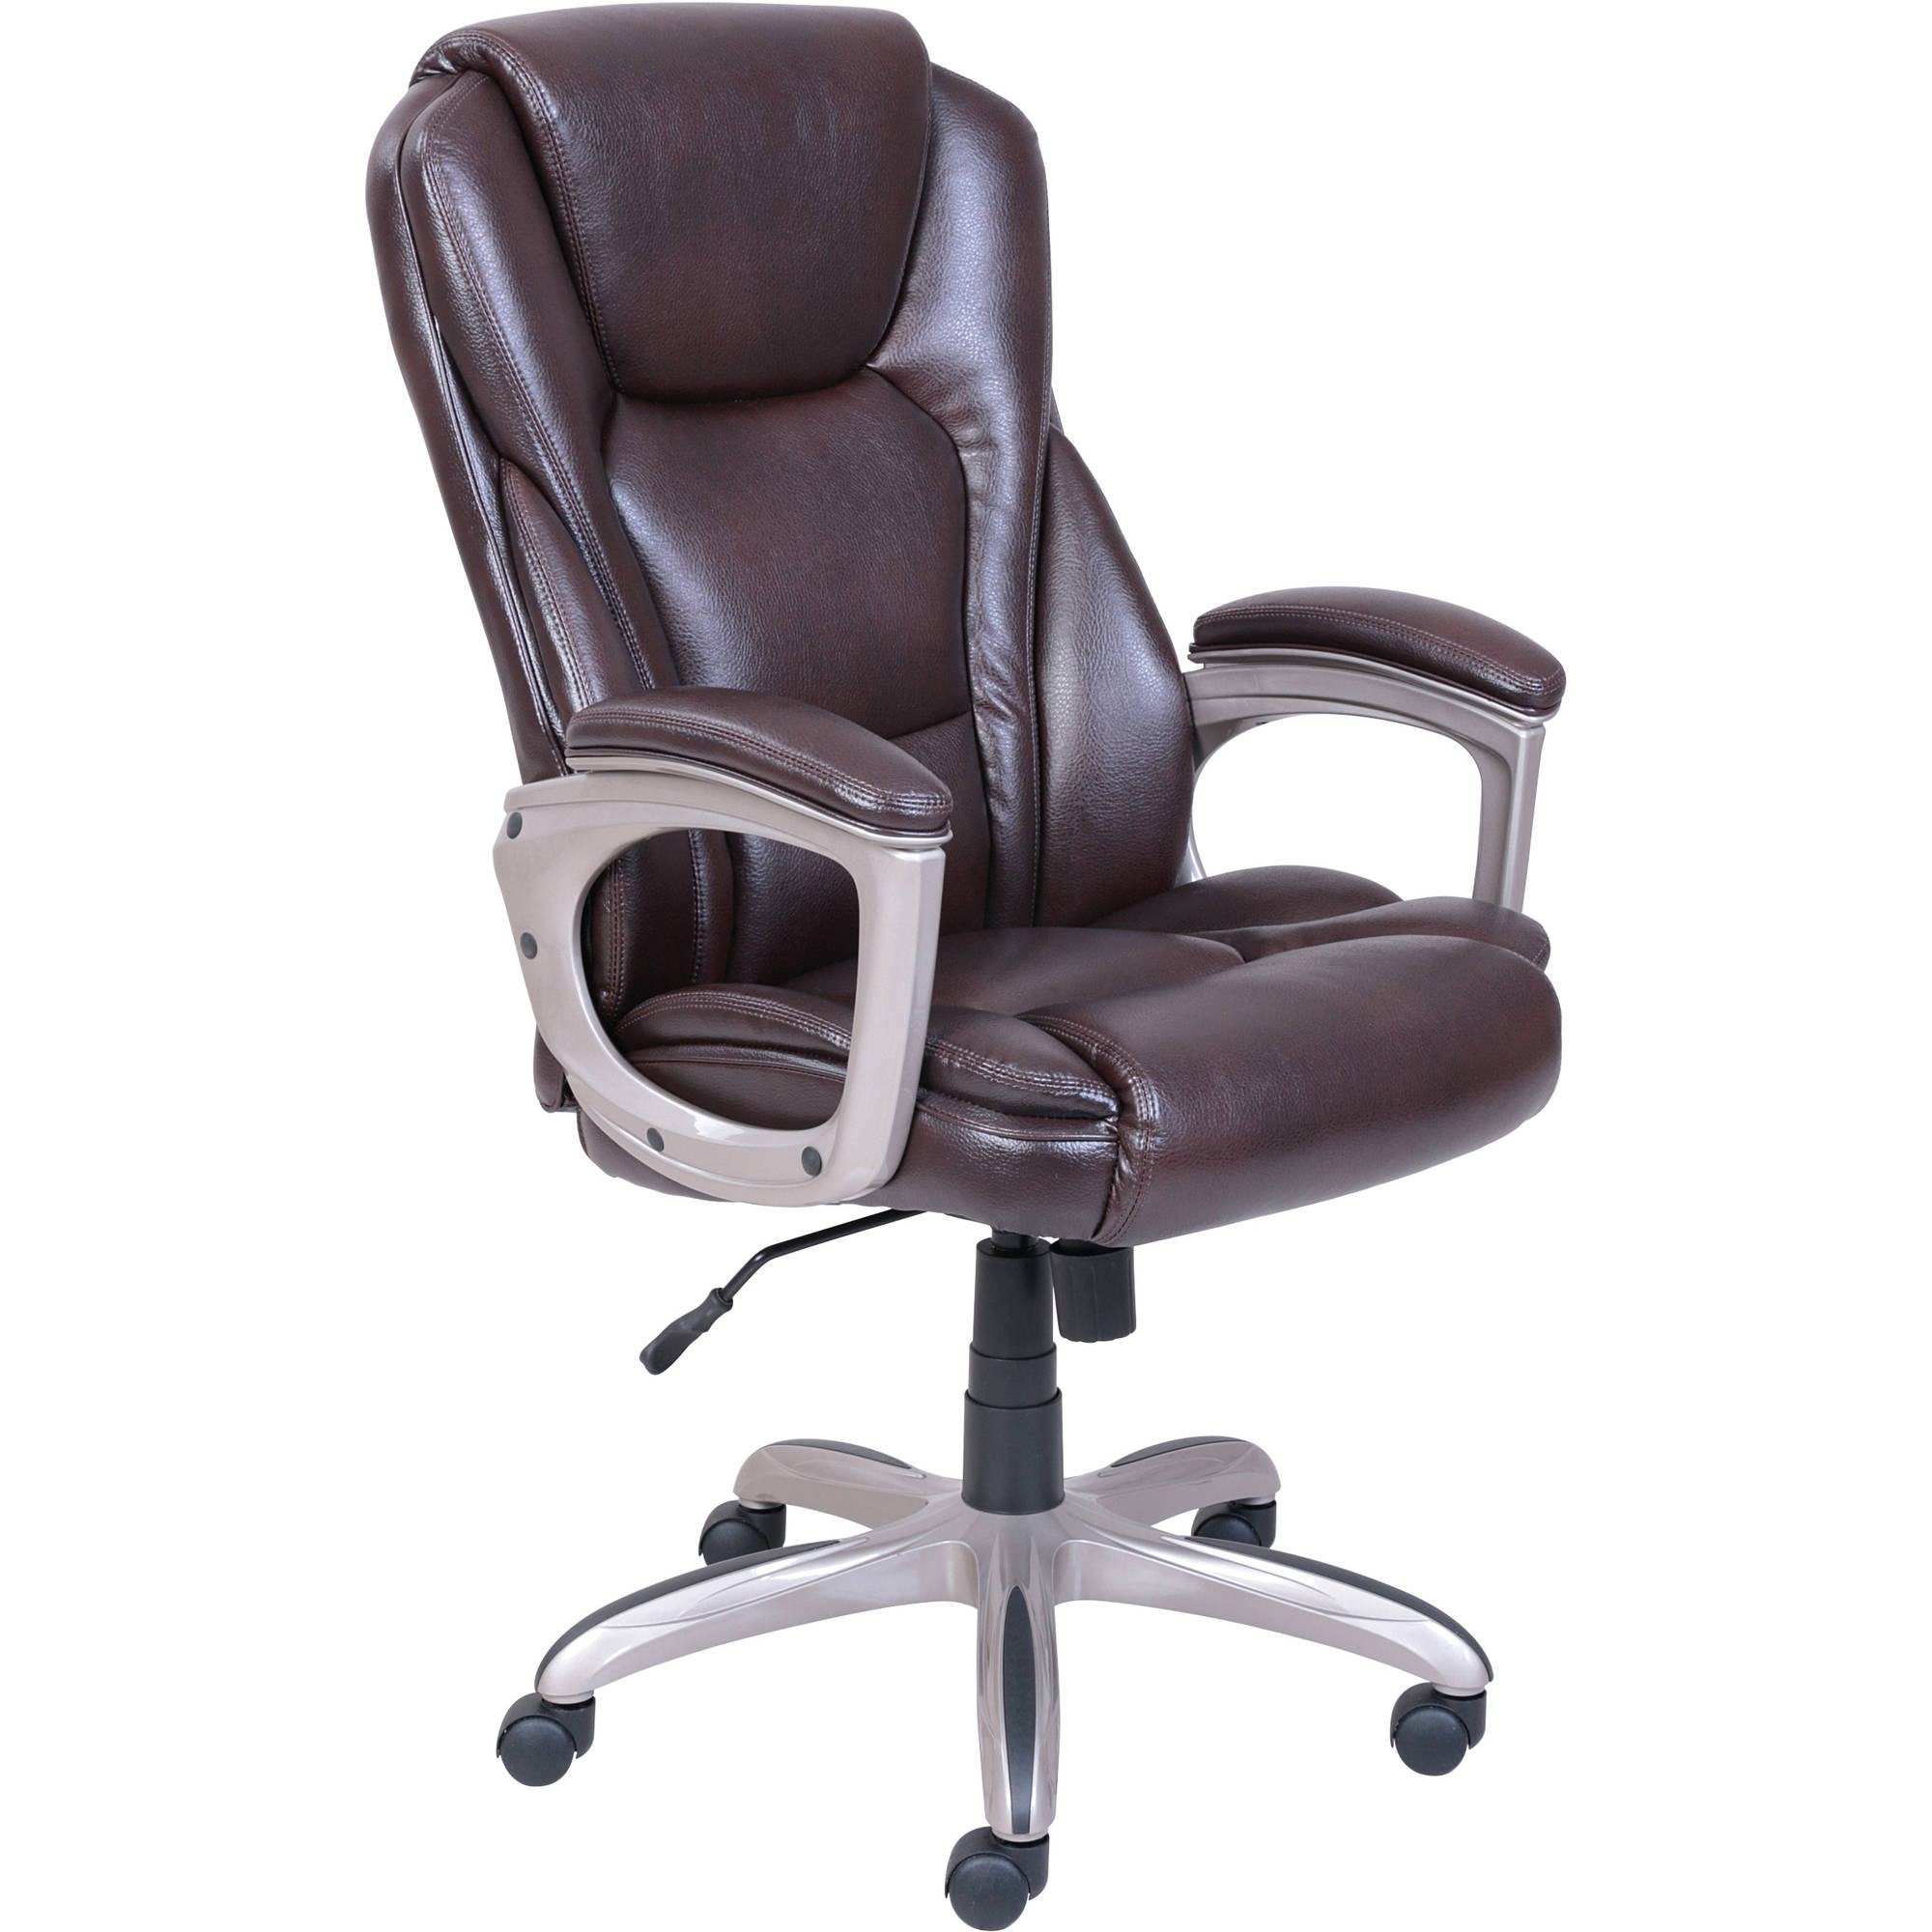 Serta Big & Tall Commercial Office Chair with Memory Foam